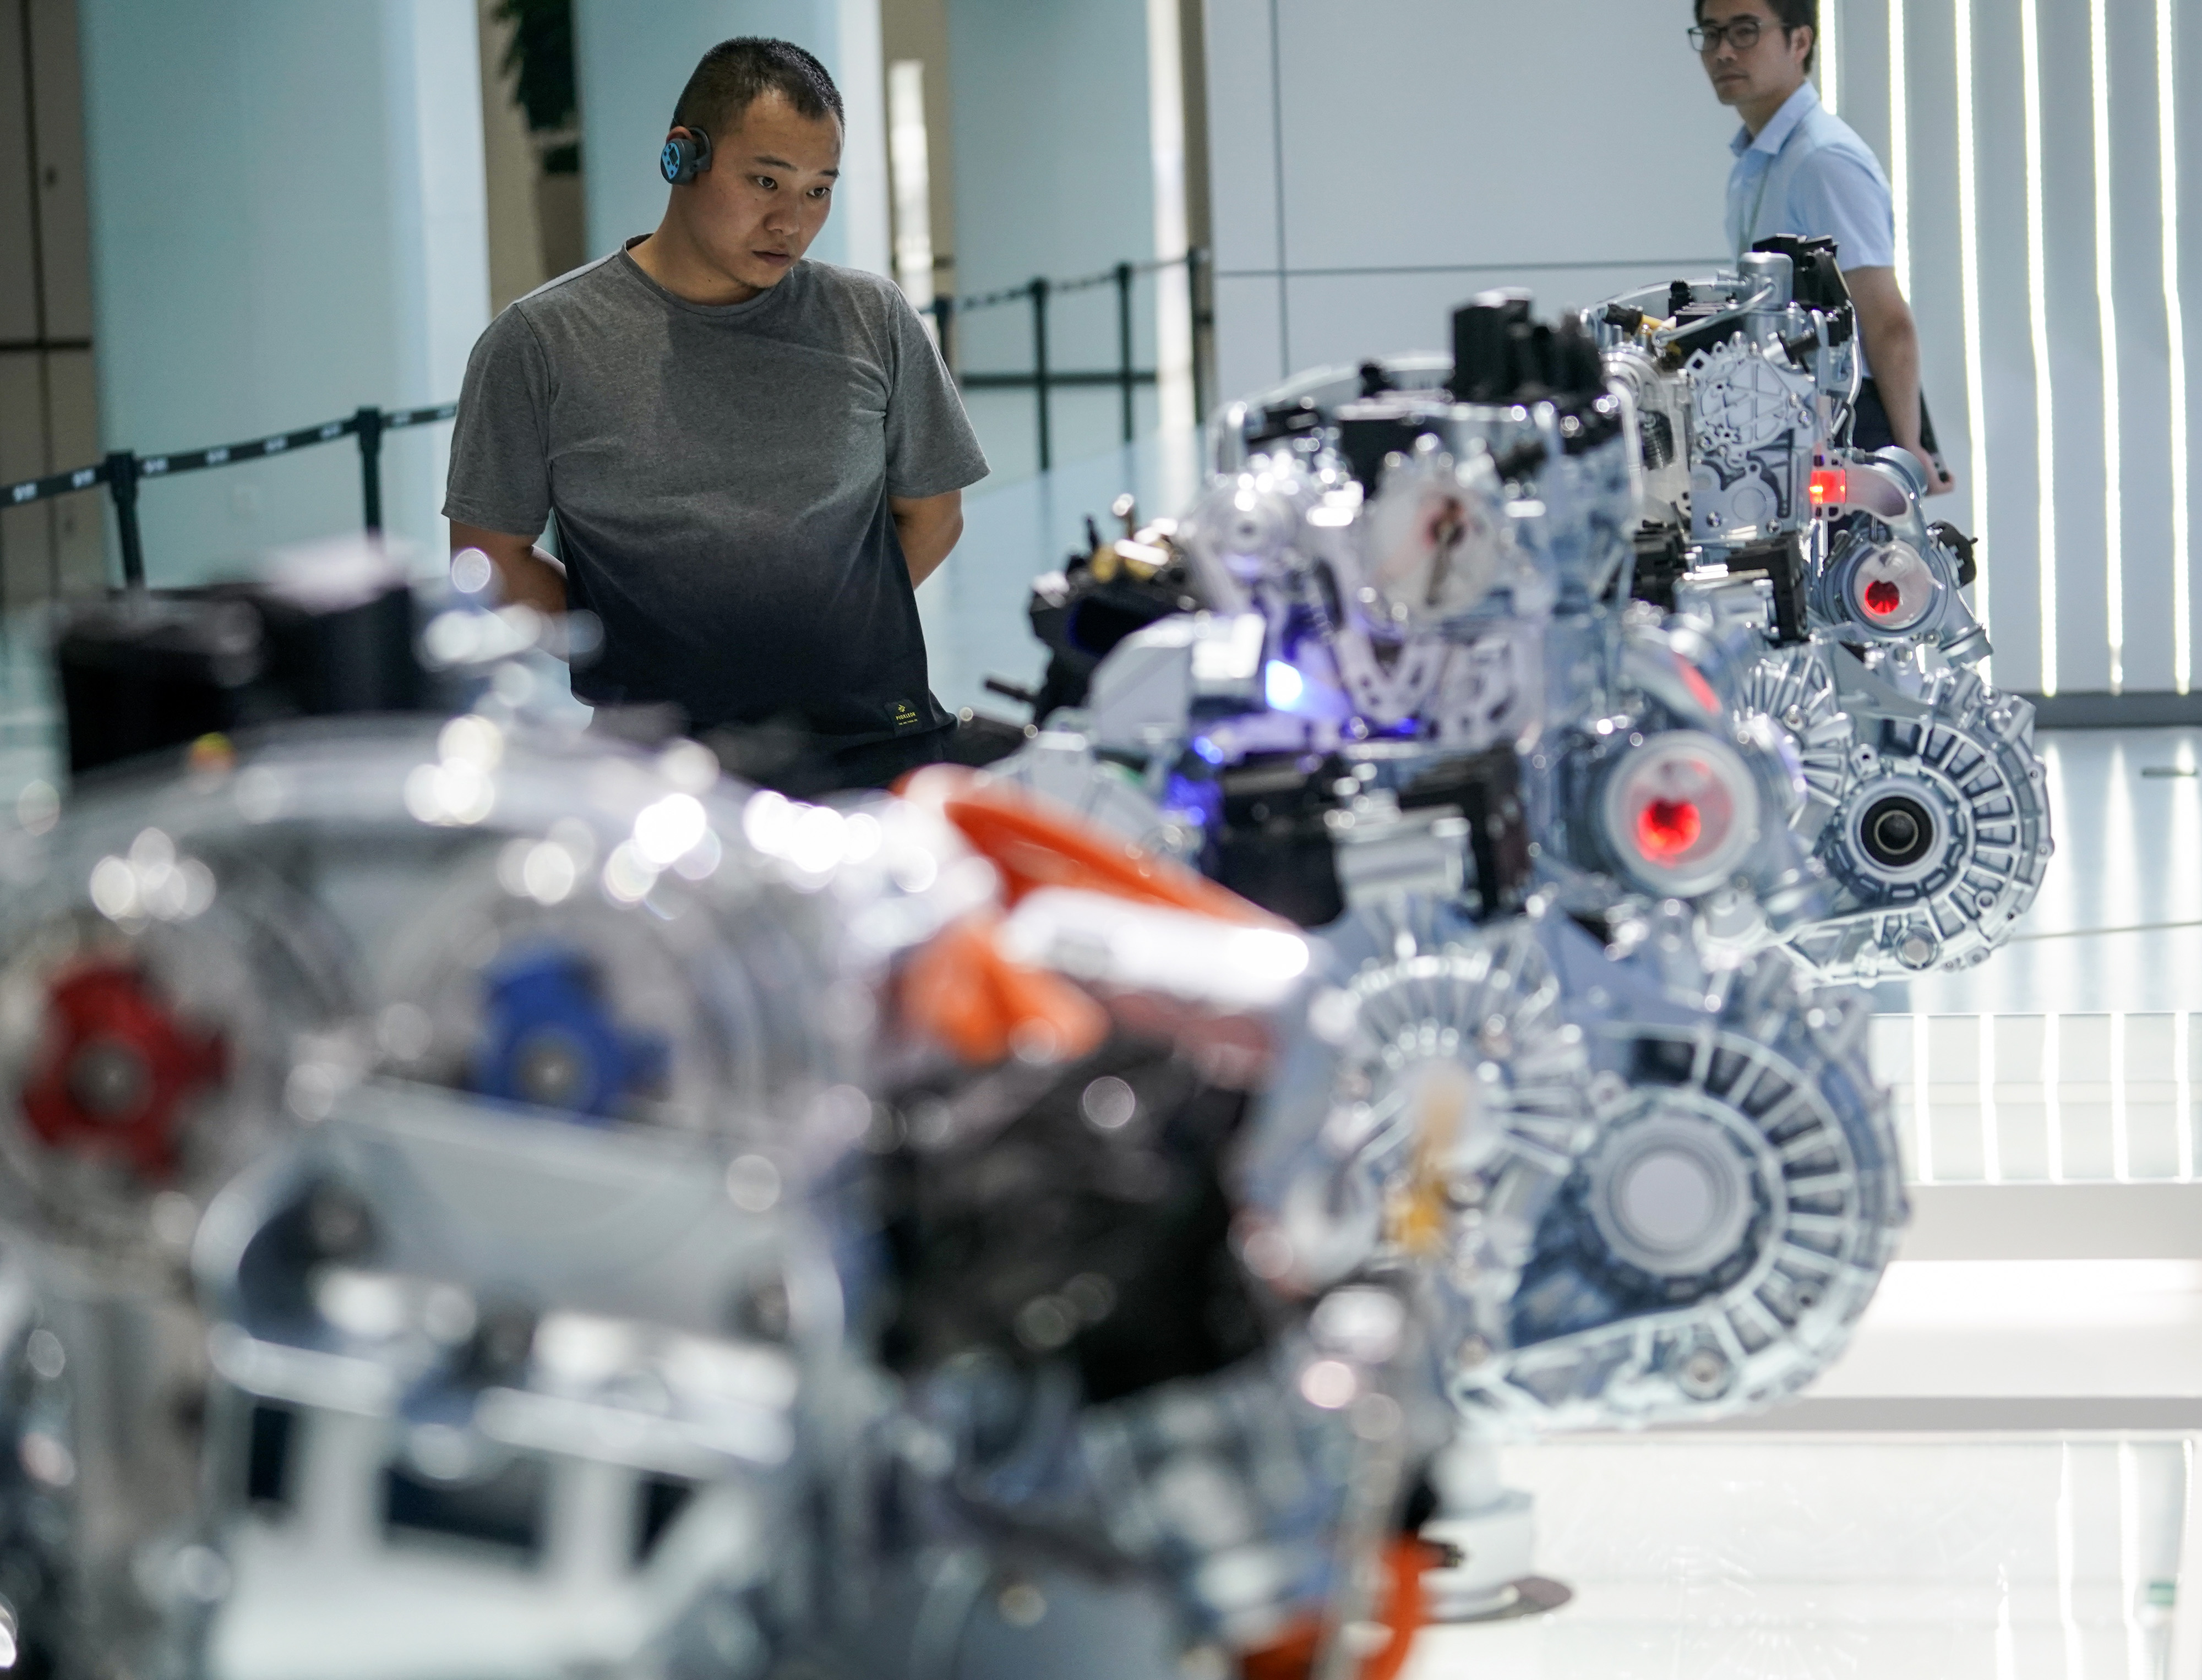 China's spending on R&D rises to historic high